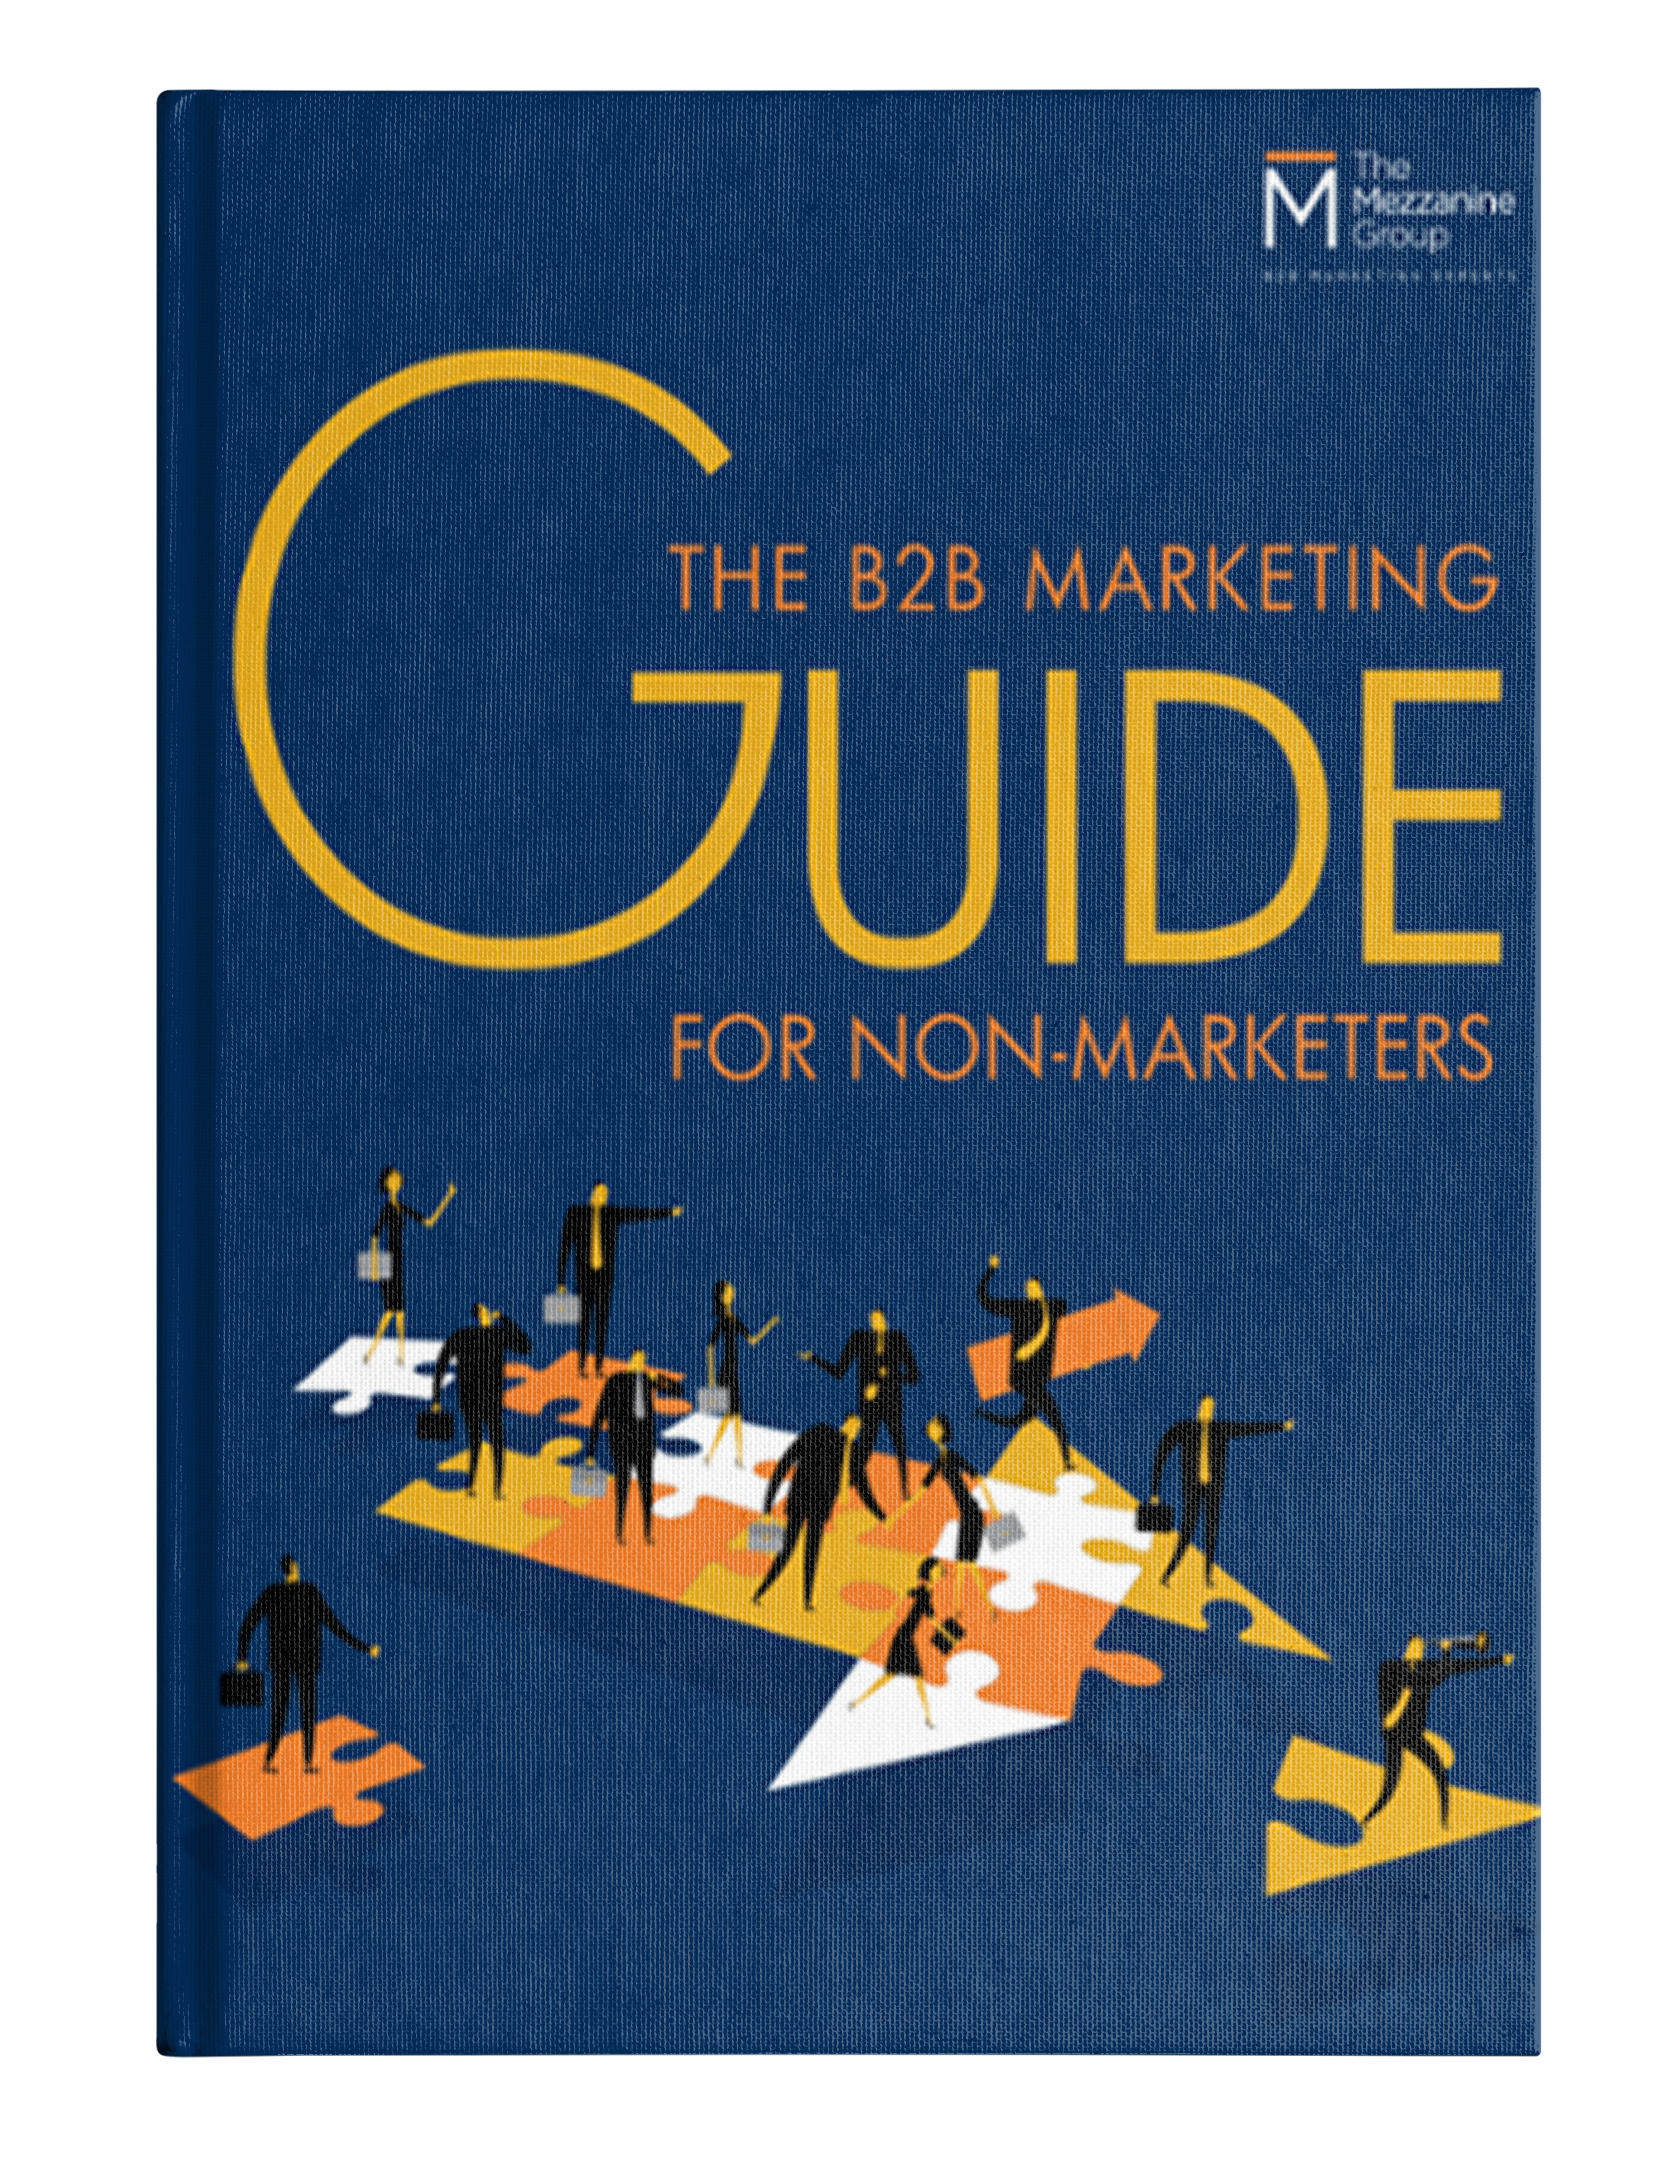 The B2B marketing guide for non-marketers-1